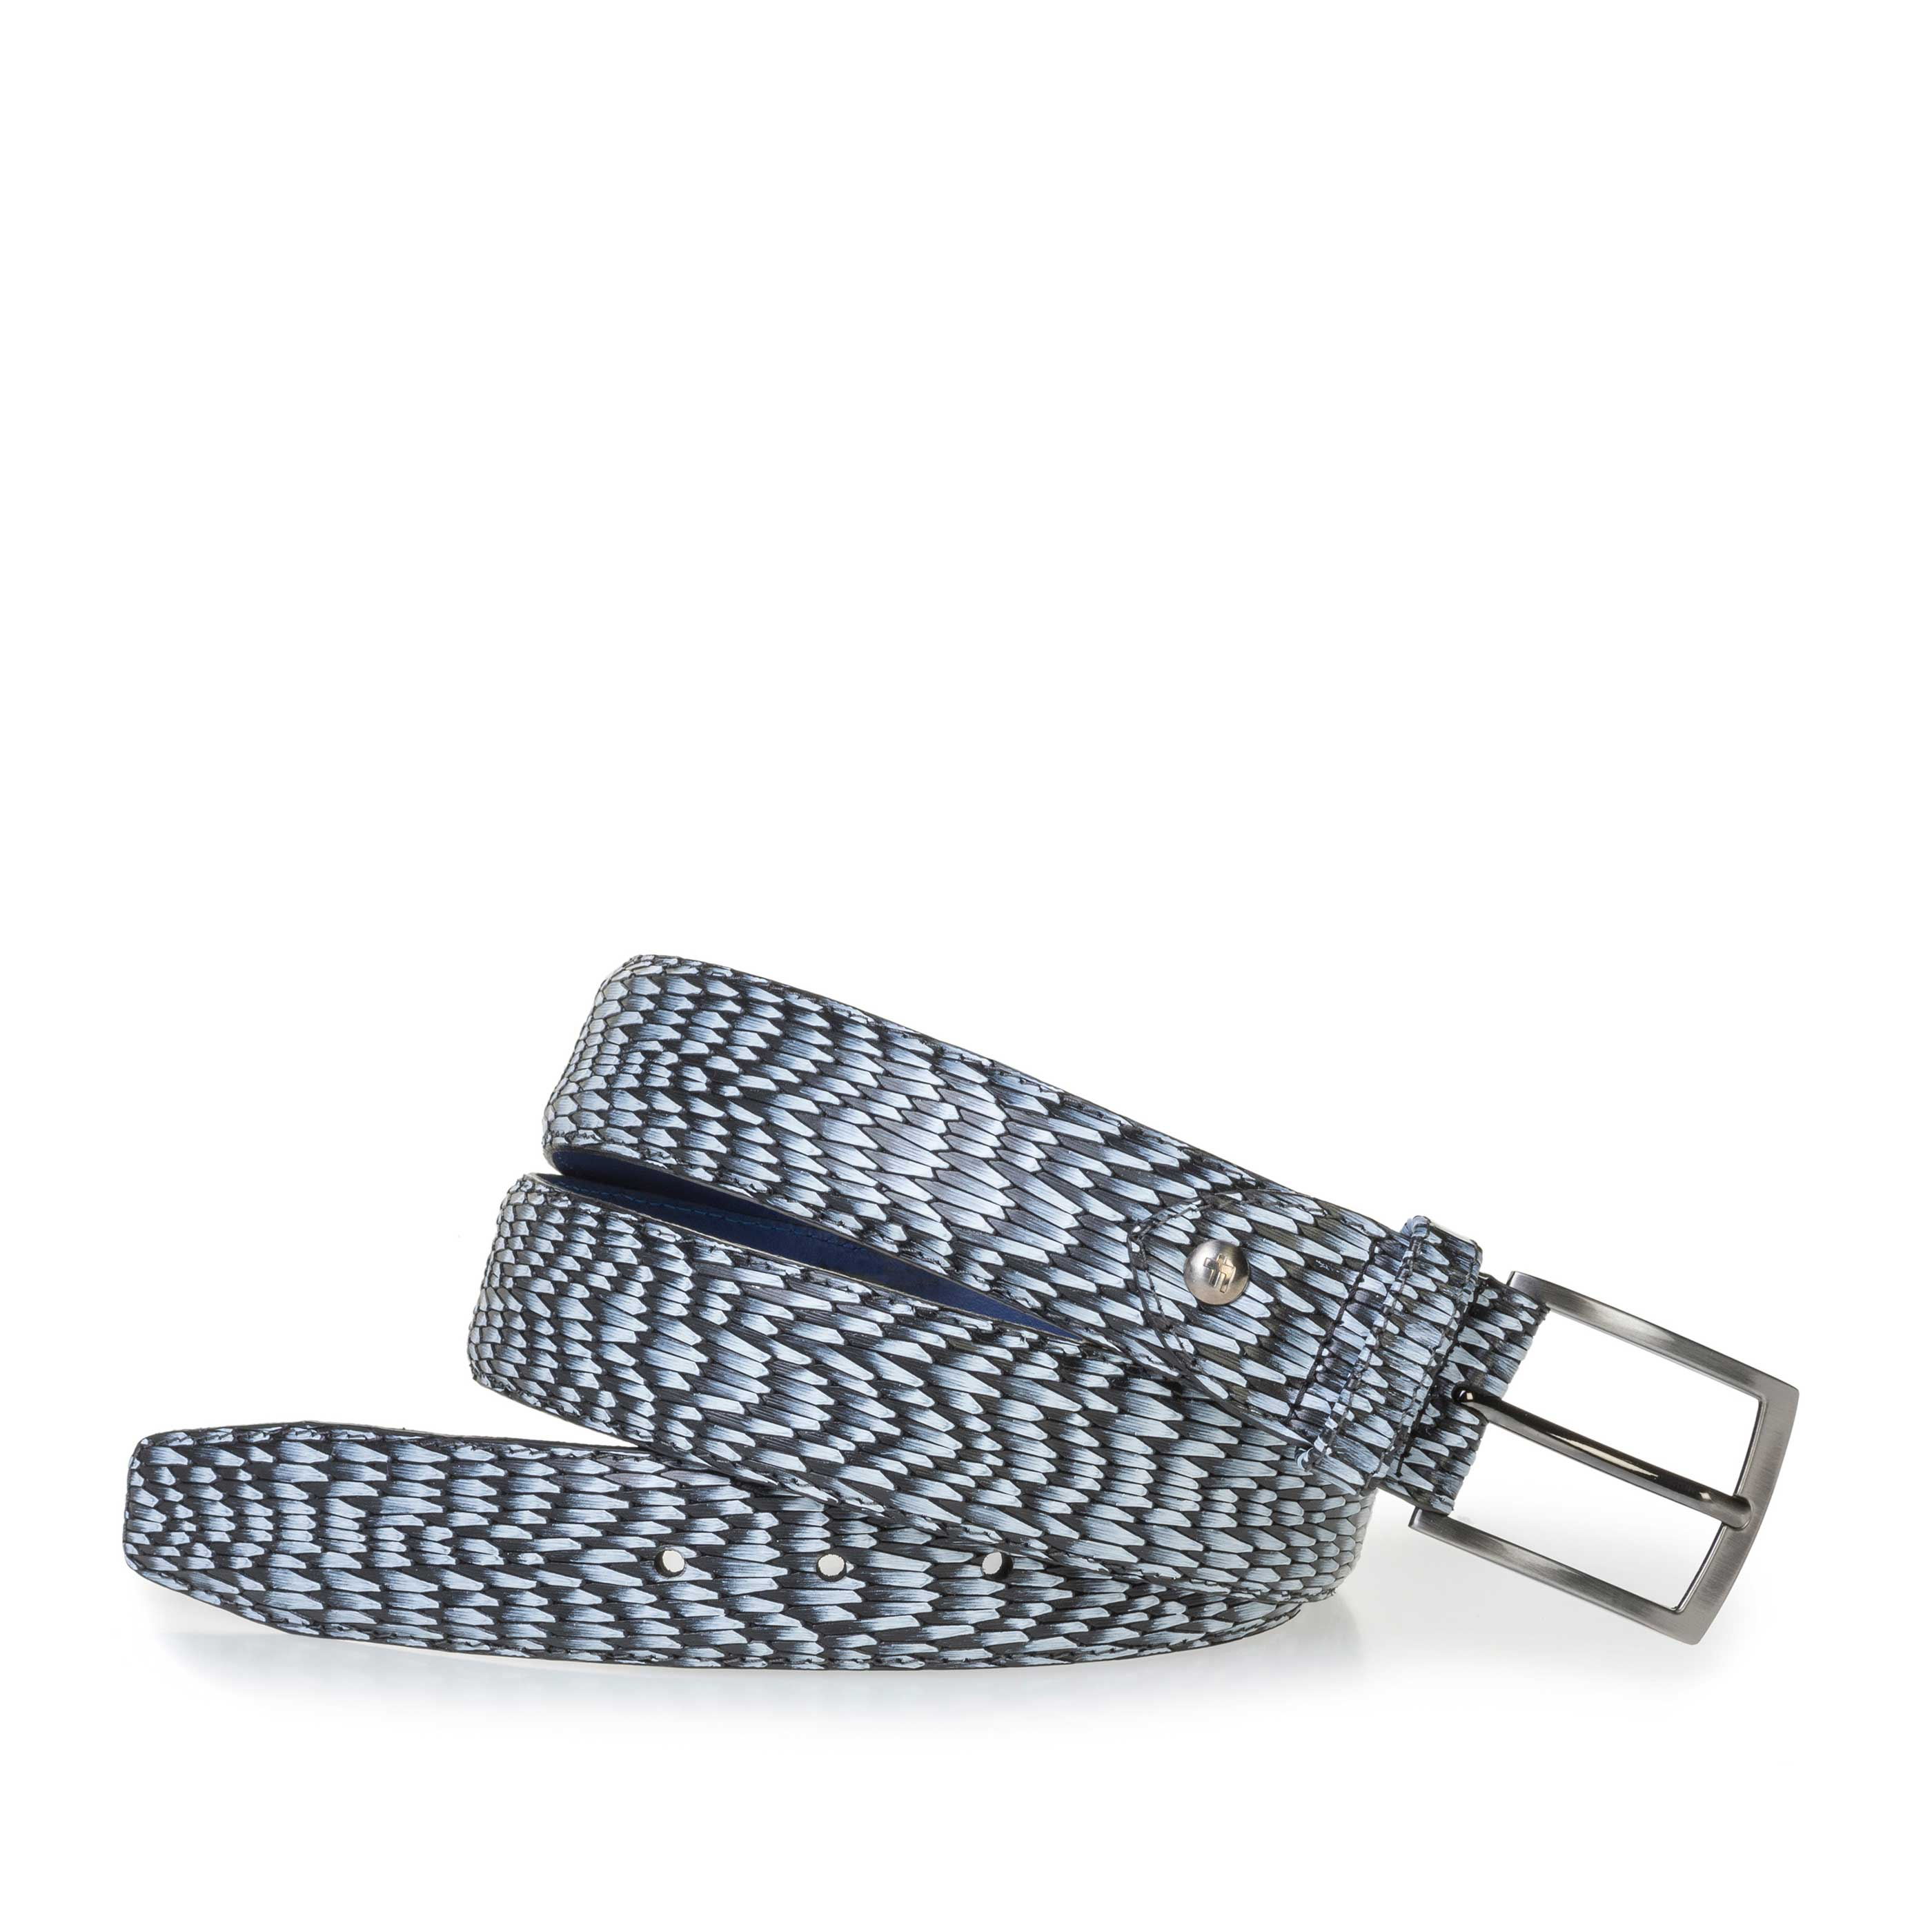 75200/73 - Grey leather belt with print